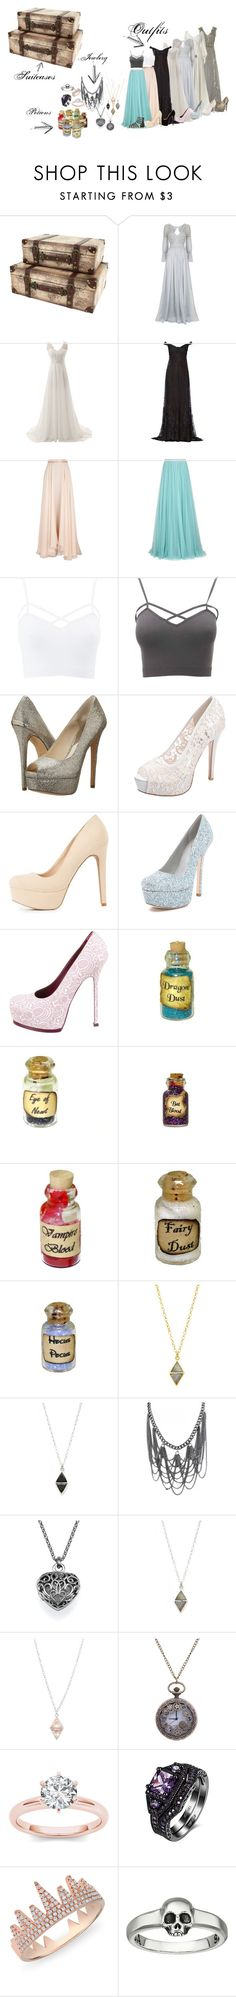 """Her Suitcase & Whats inside"" by dubstepcreeper302 ❤ liked on Polyvore featuring Aspire Home Accents, Alberta Ferretti, Temperley London, Givenchy, Lanvin, Jenny Packham, Charlotte Russe, MICHAEL Michael Kors, Christian Louboutin and Alice + Olivia"